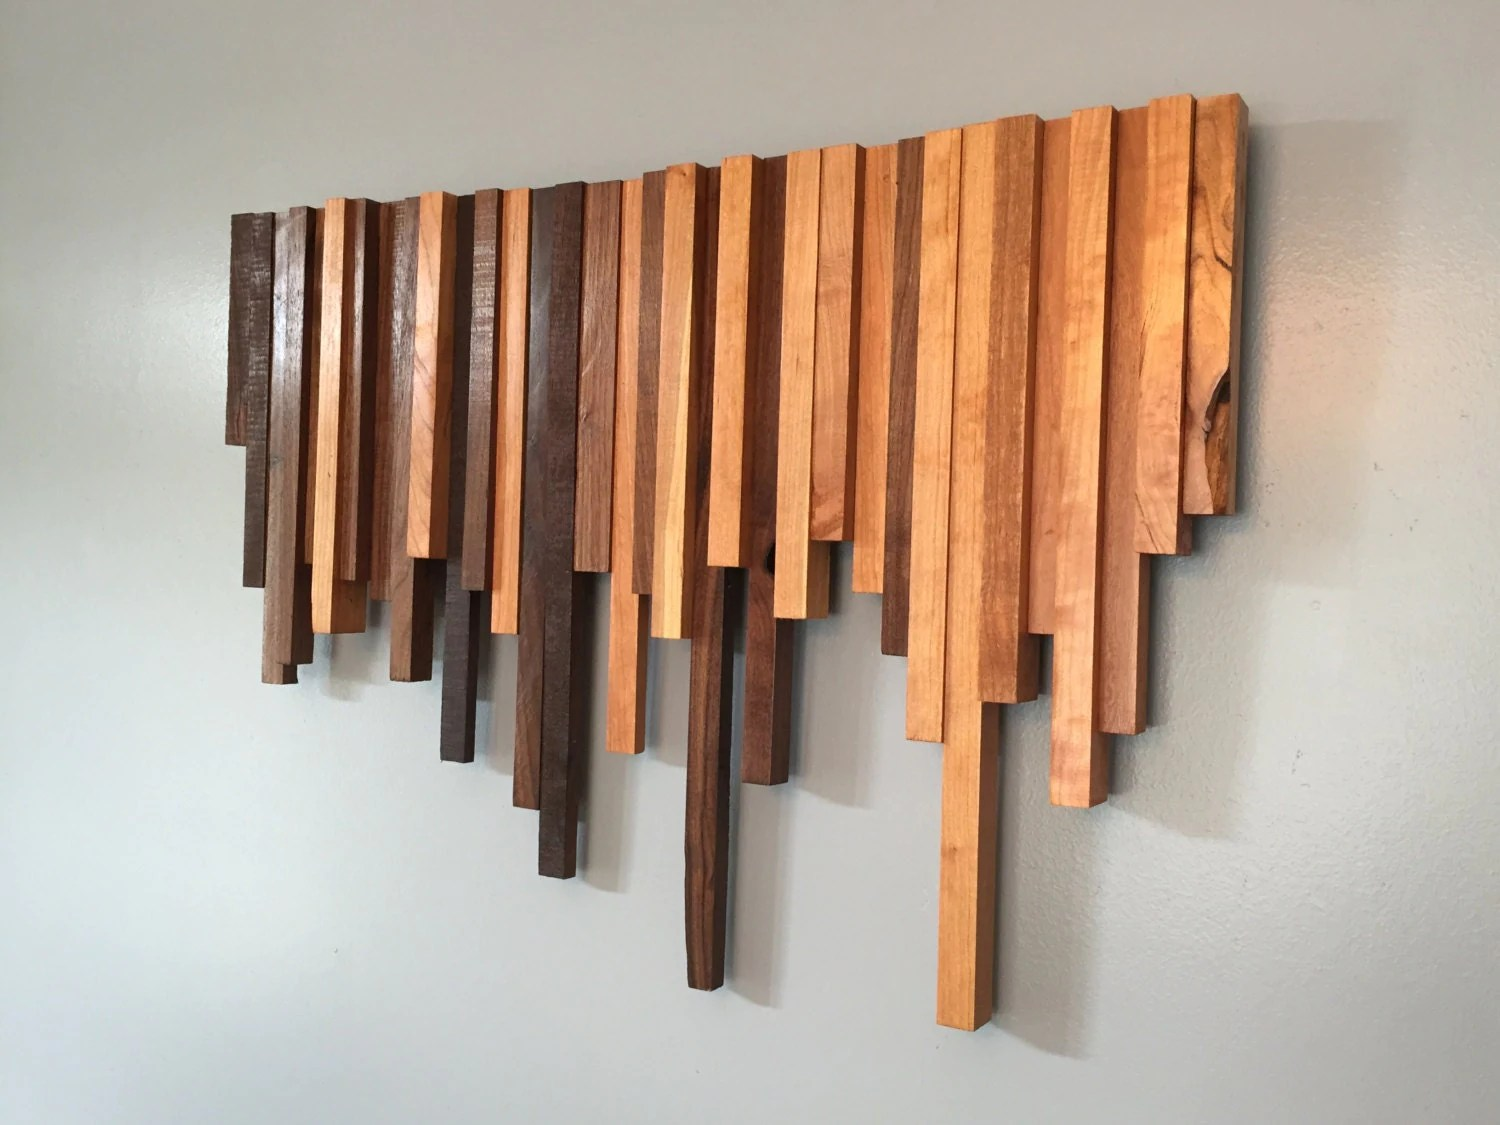 Wood Decorative Wall Art Wooden Wall Art Cherry And Walnut Strips Wall Decor Wood